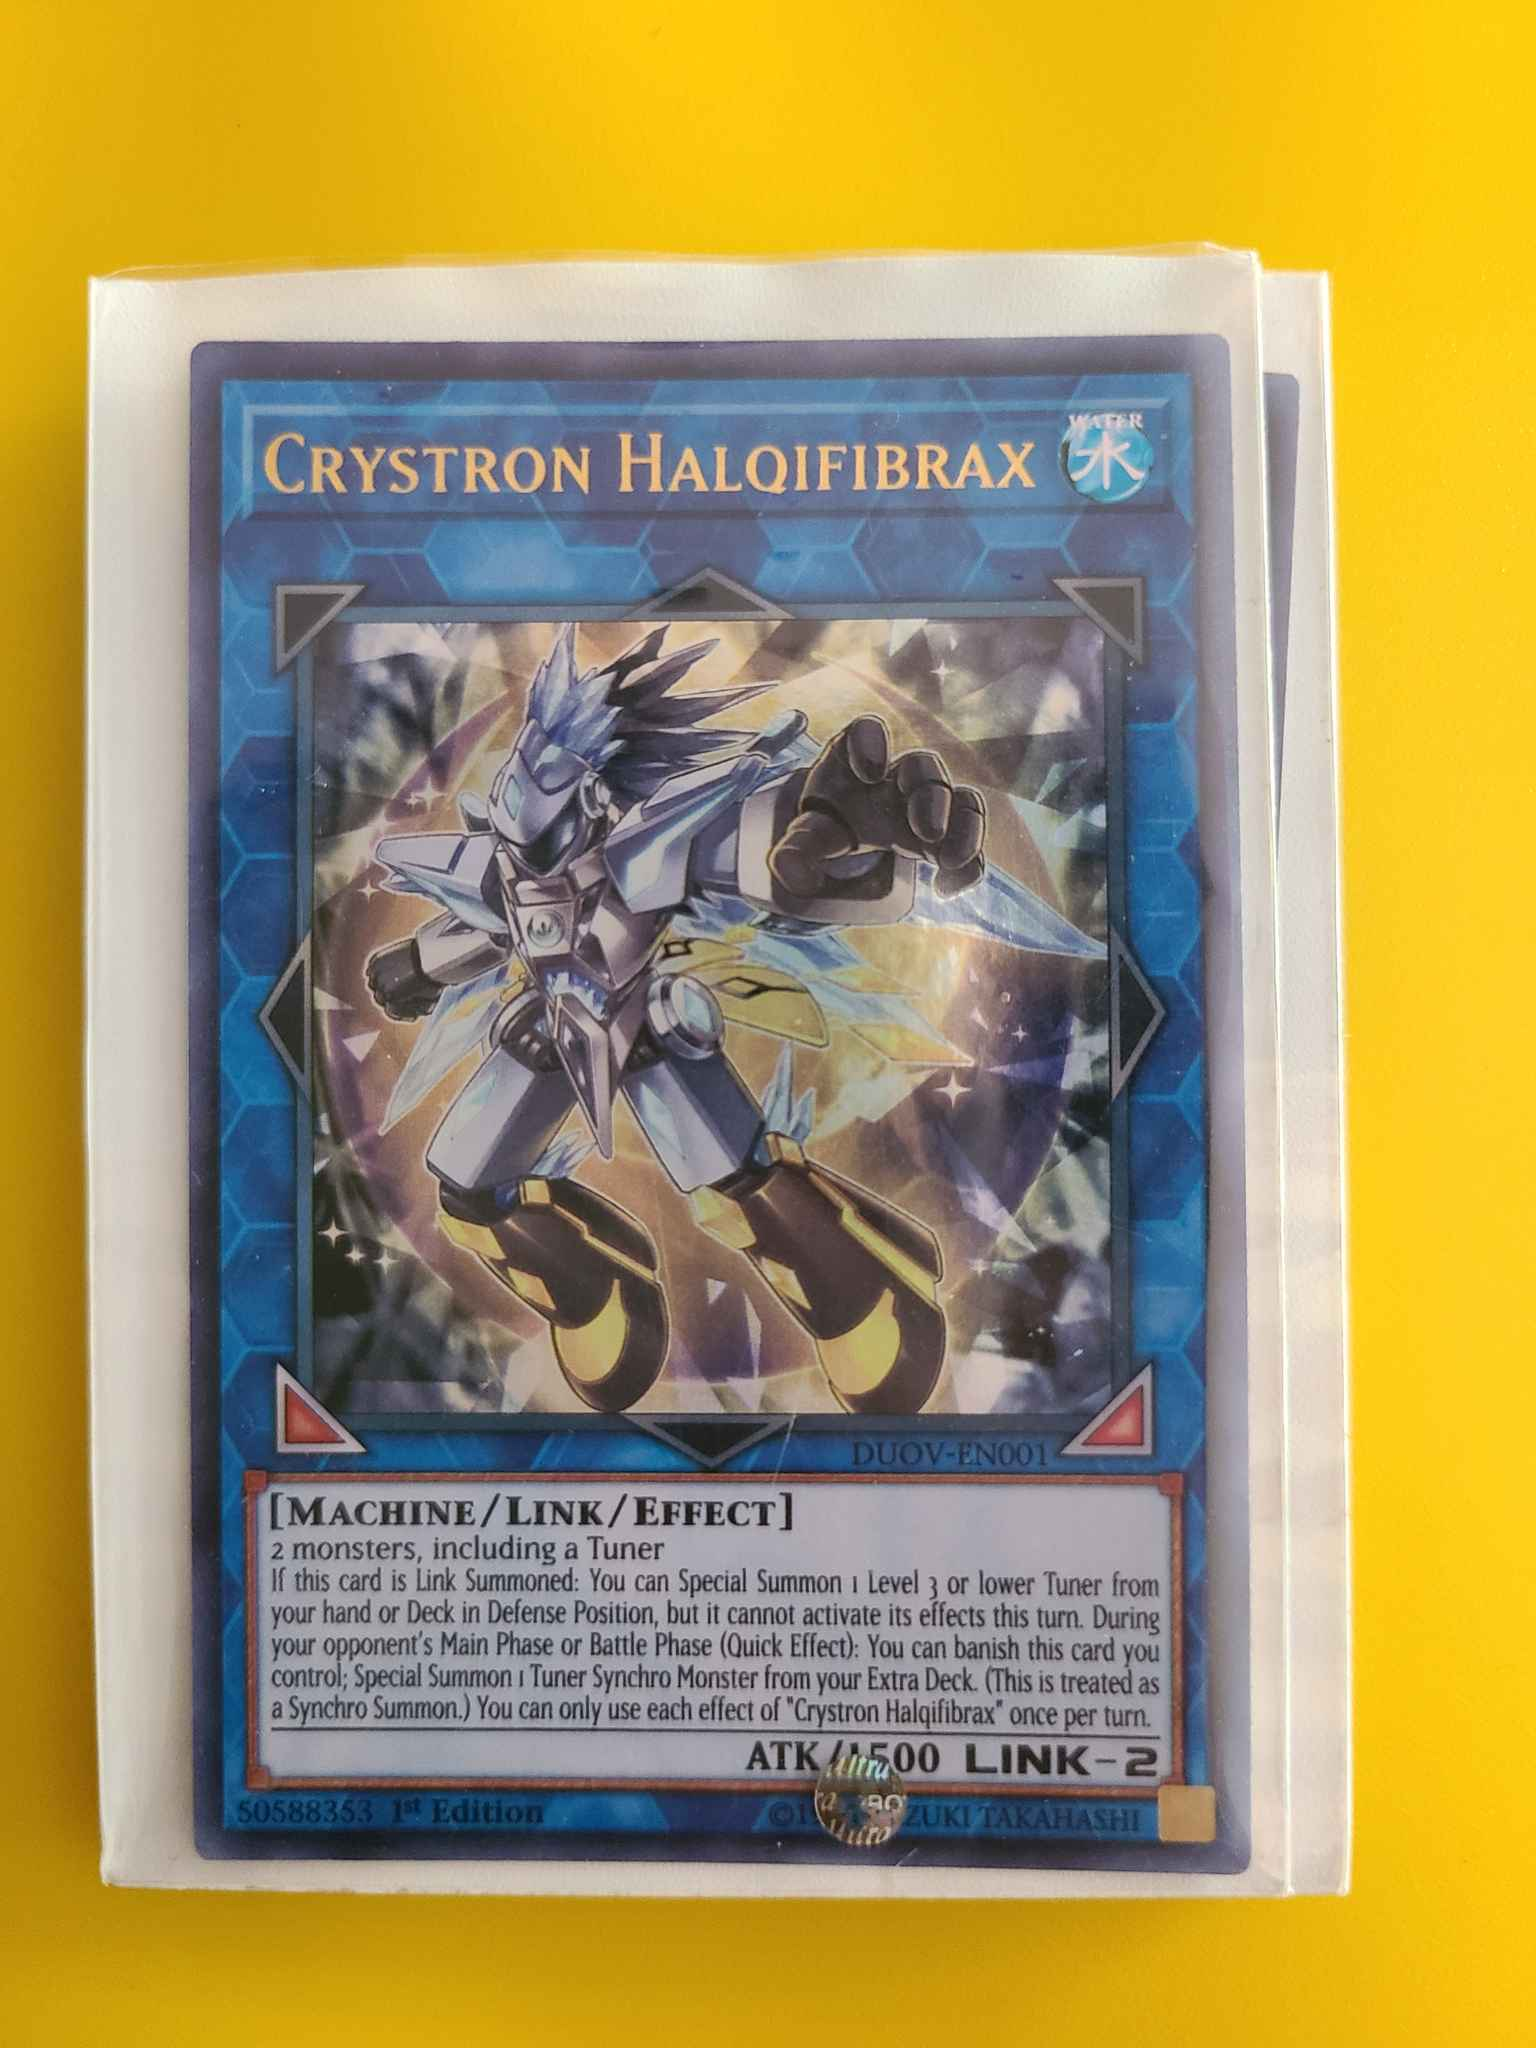 Crystron Halqifibrax Yugioh Duel Overload in hand ready to ship!